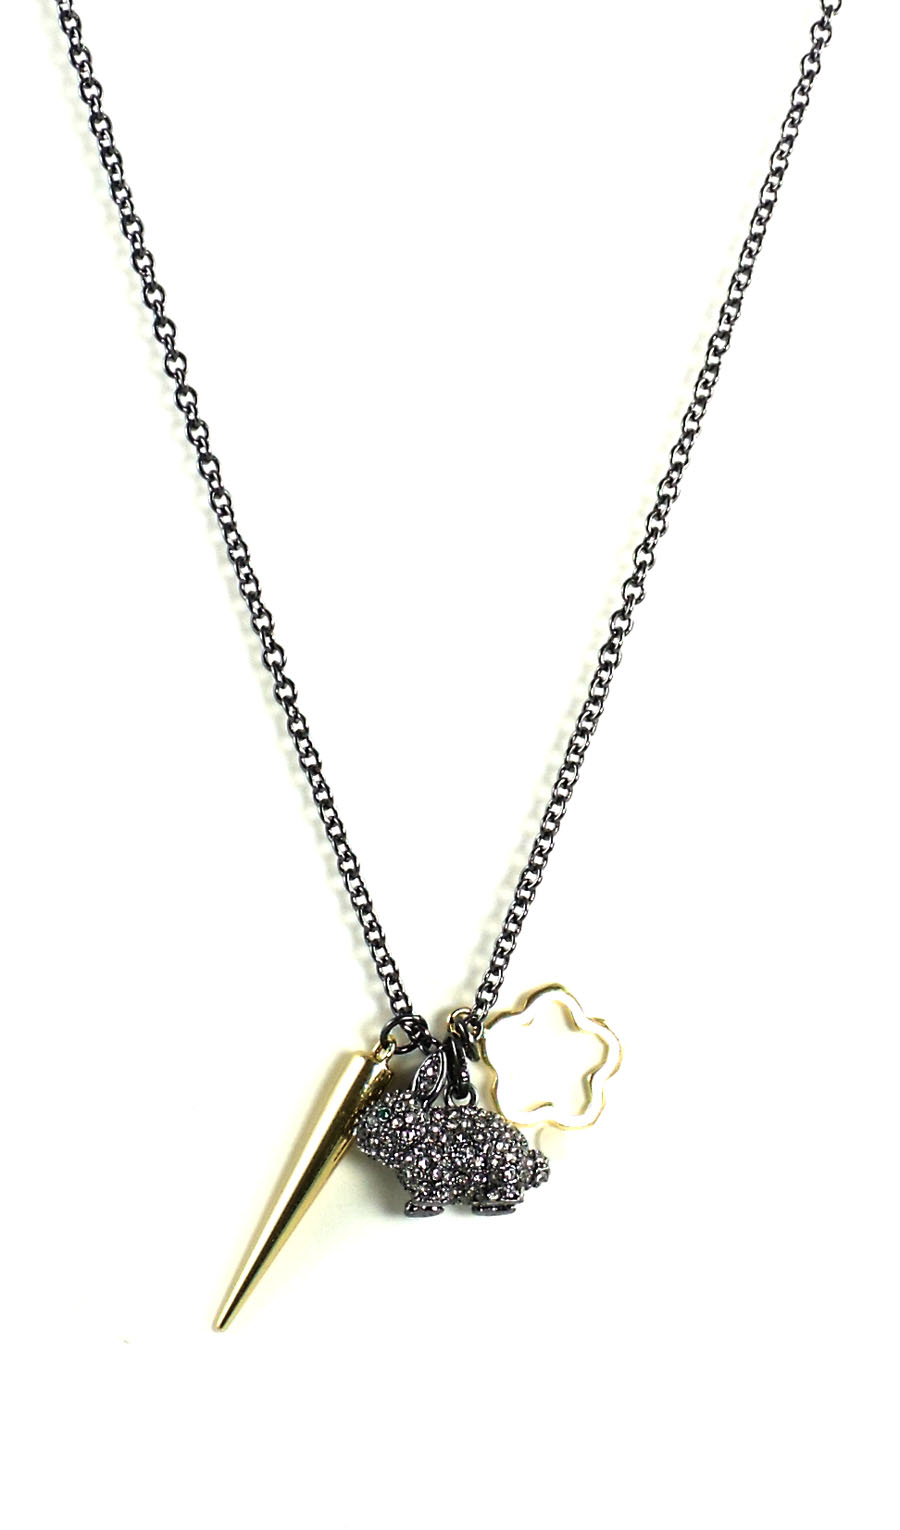 Juicy Couture Jewelry Black Silver Pave Bunny Necklace NWT ...